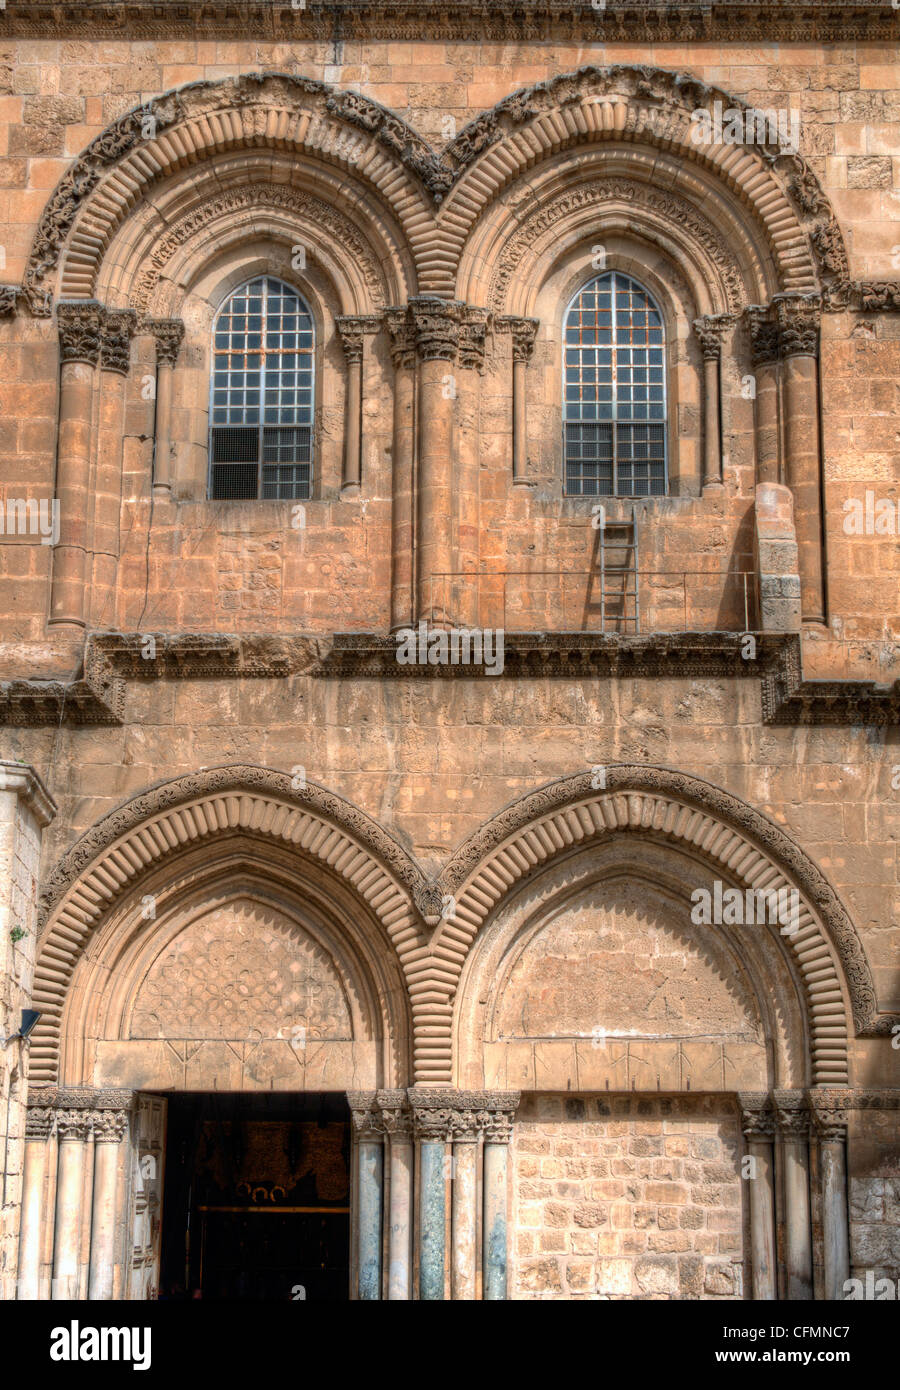 Historic facade of the Church of the Holy Sepulchre in Jerusalem, Israel - Stock Image